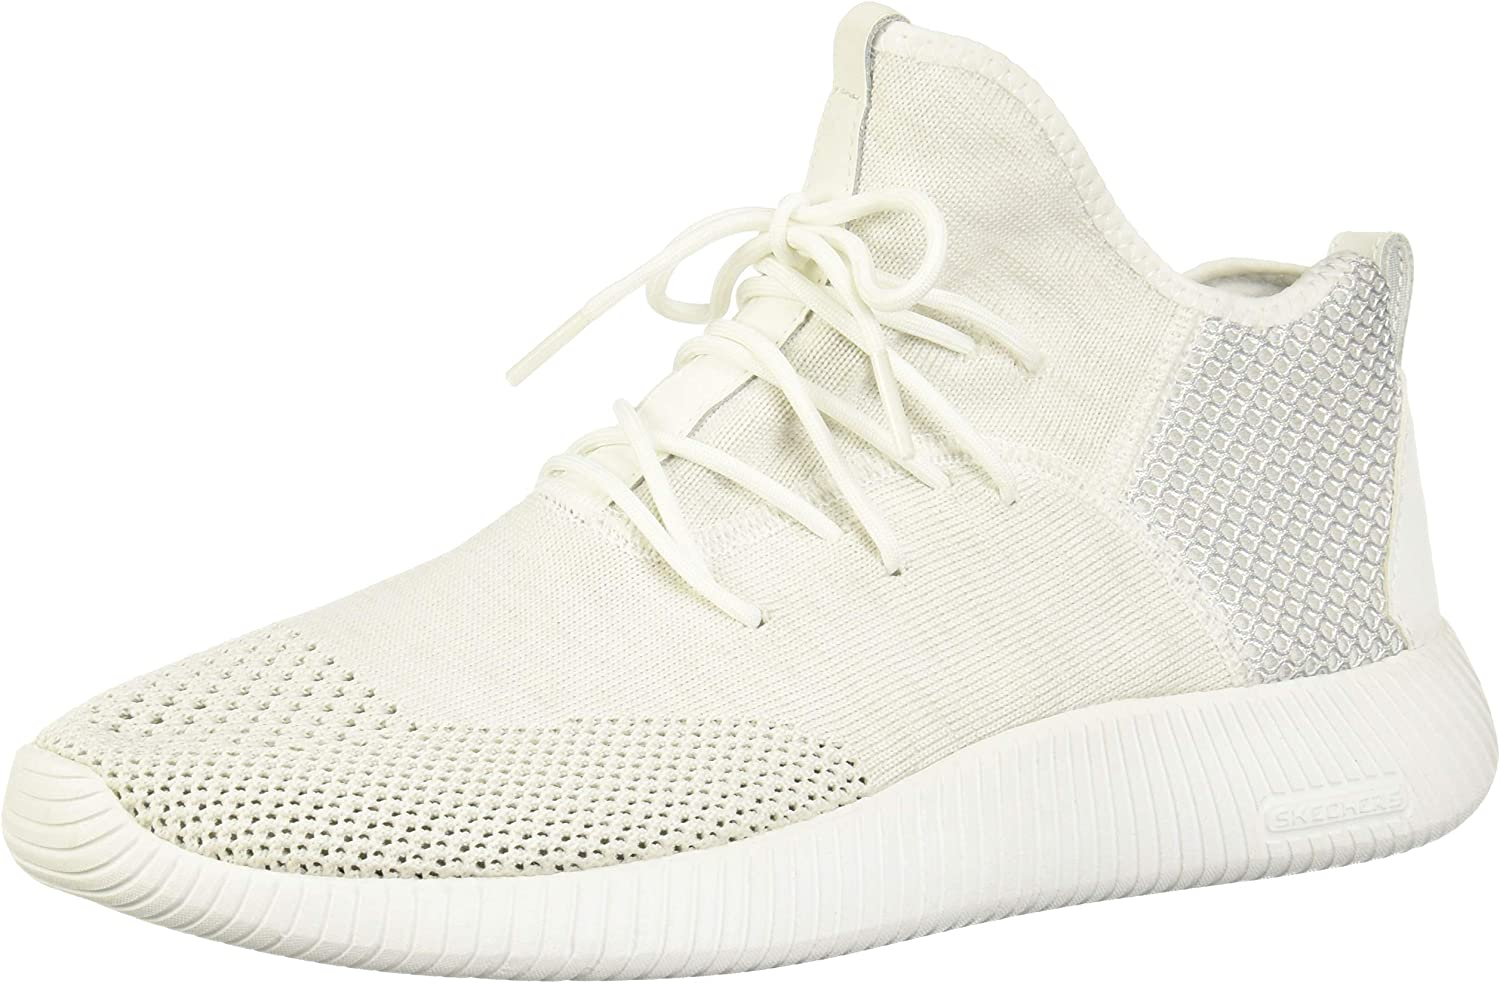 Skechers Men's Depth Charge - UP to Snuff Sneakers